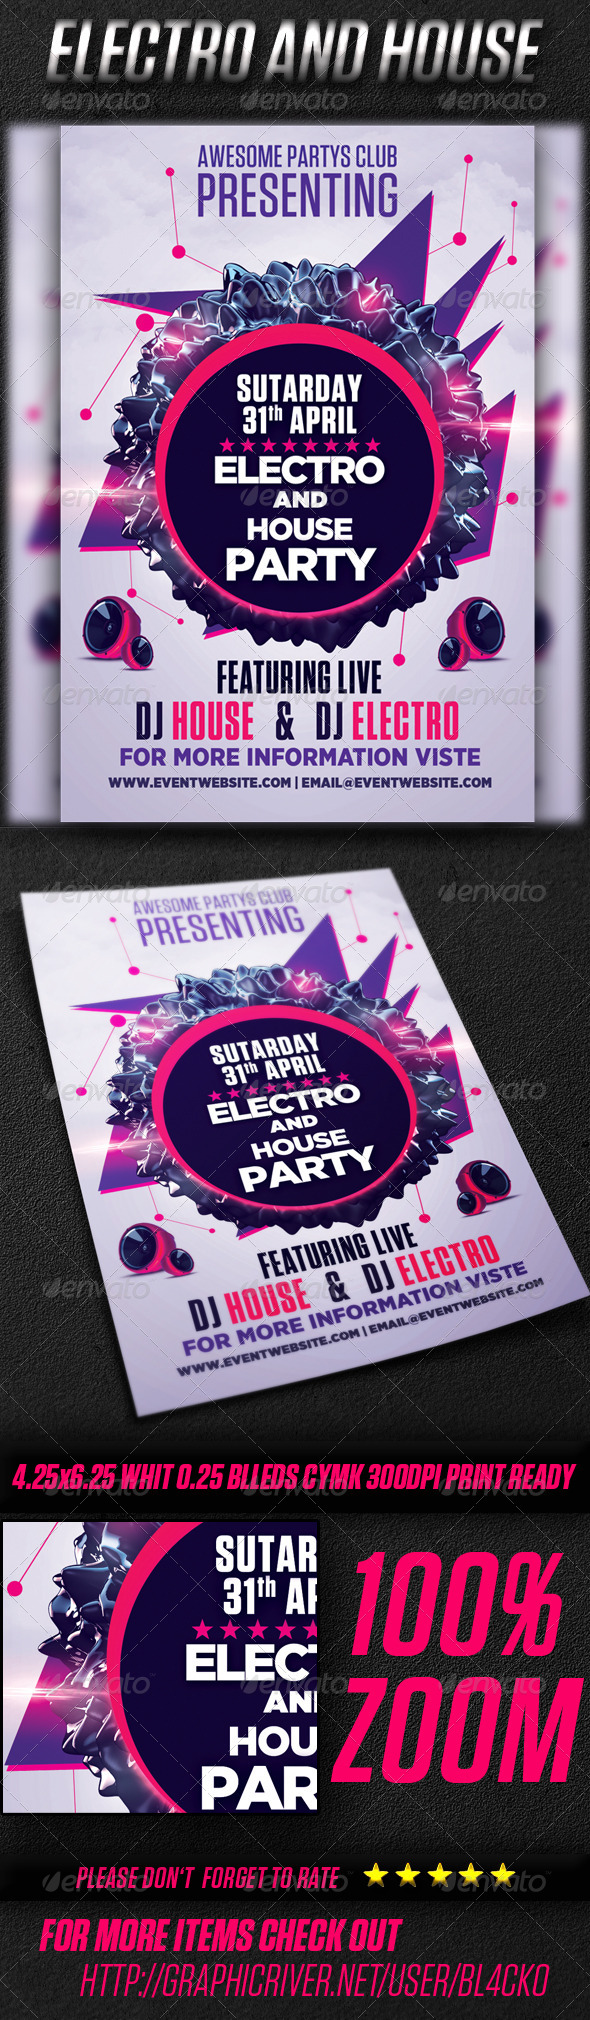 Electro And House Party Vol2 - Events Flyers